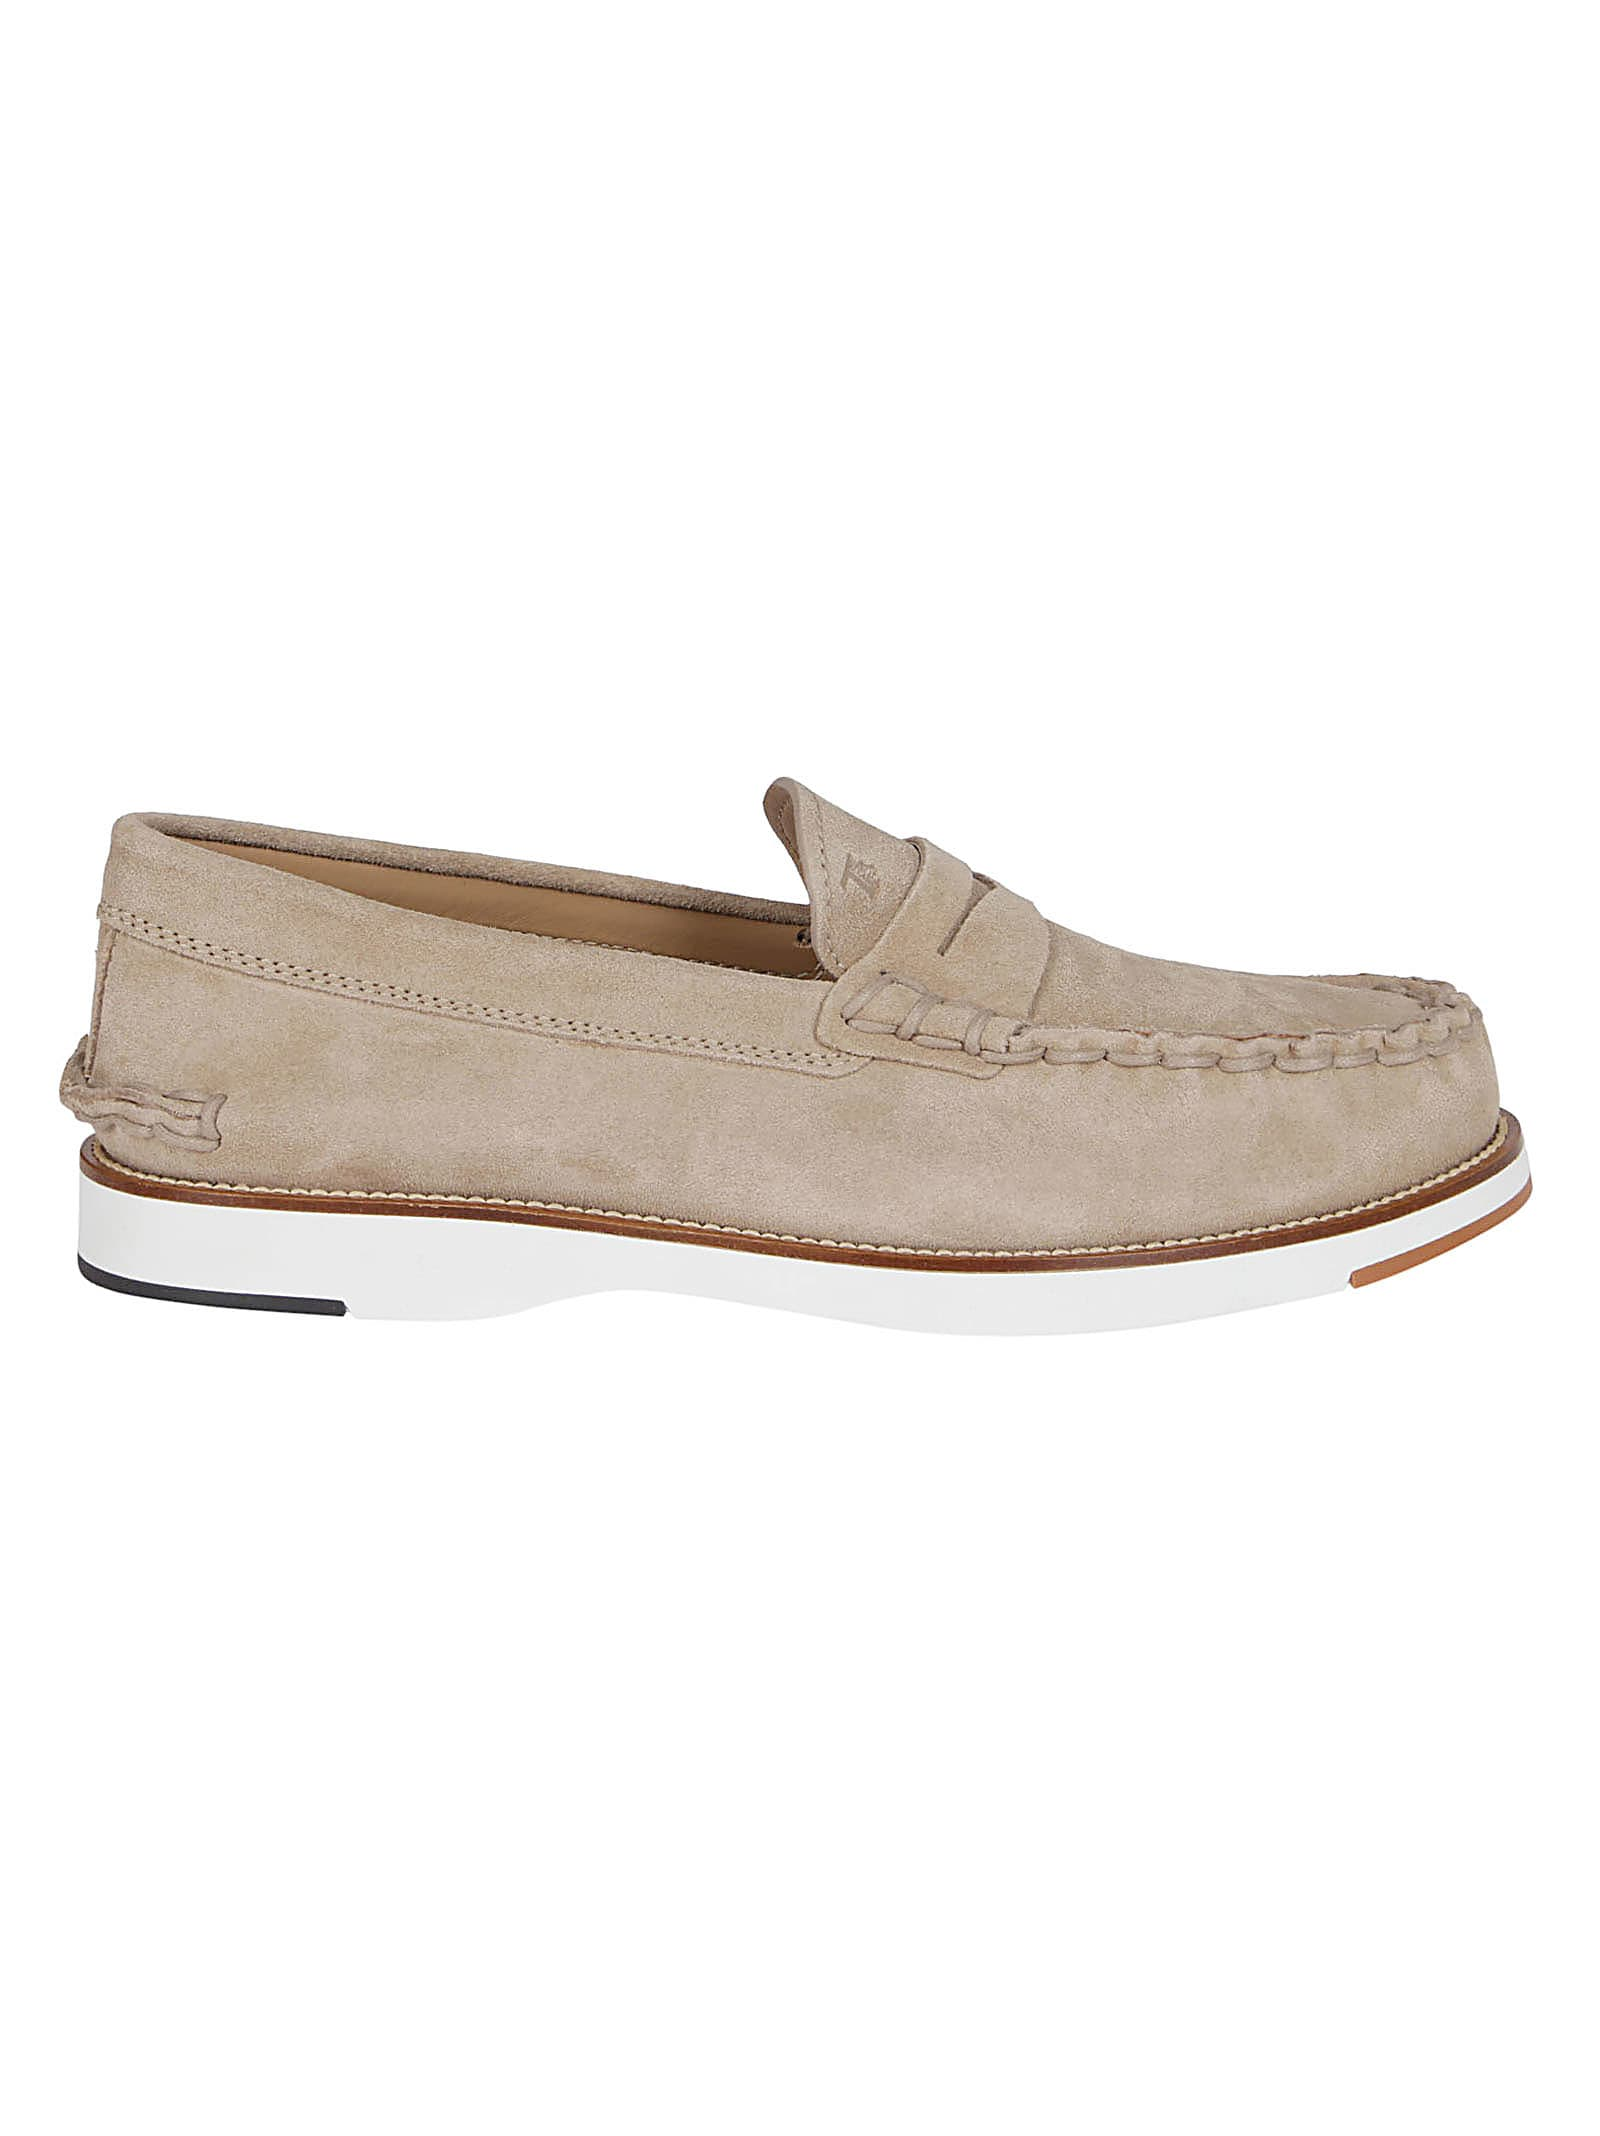 Tods Beige Suede Loafers